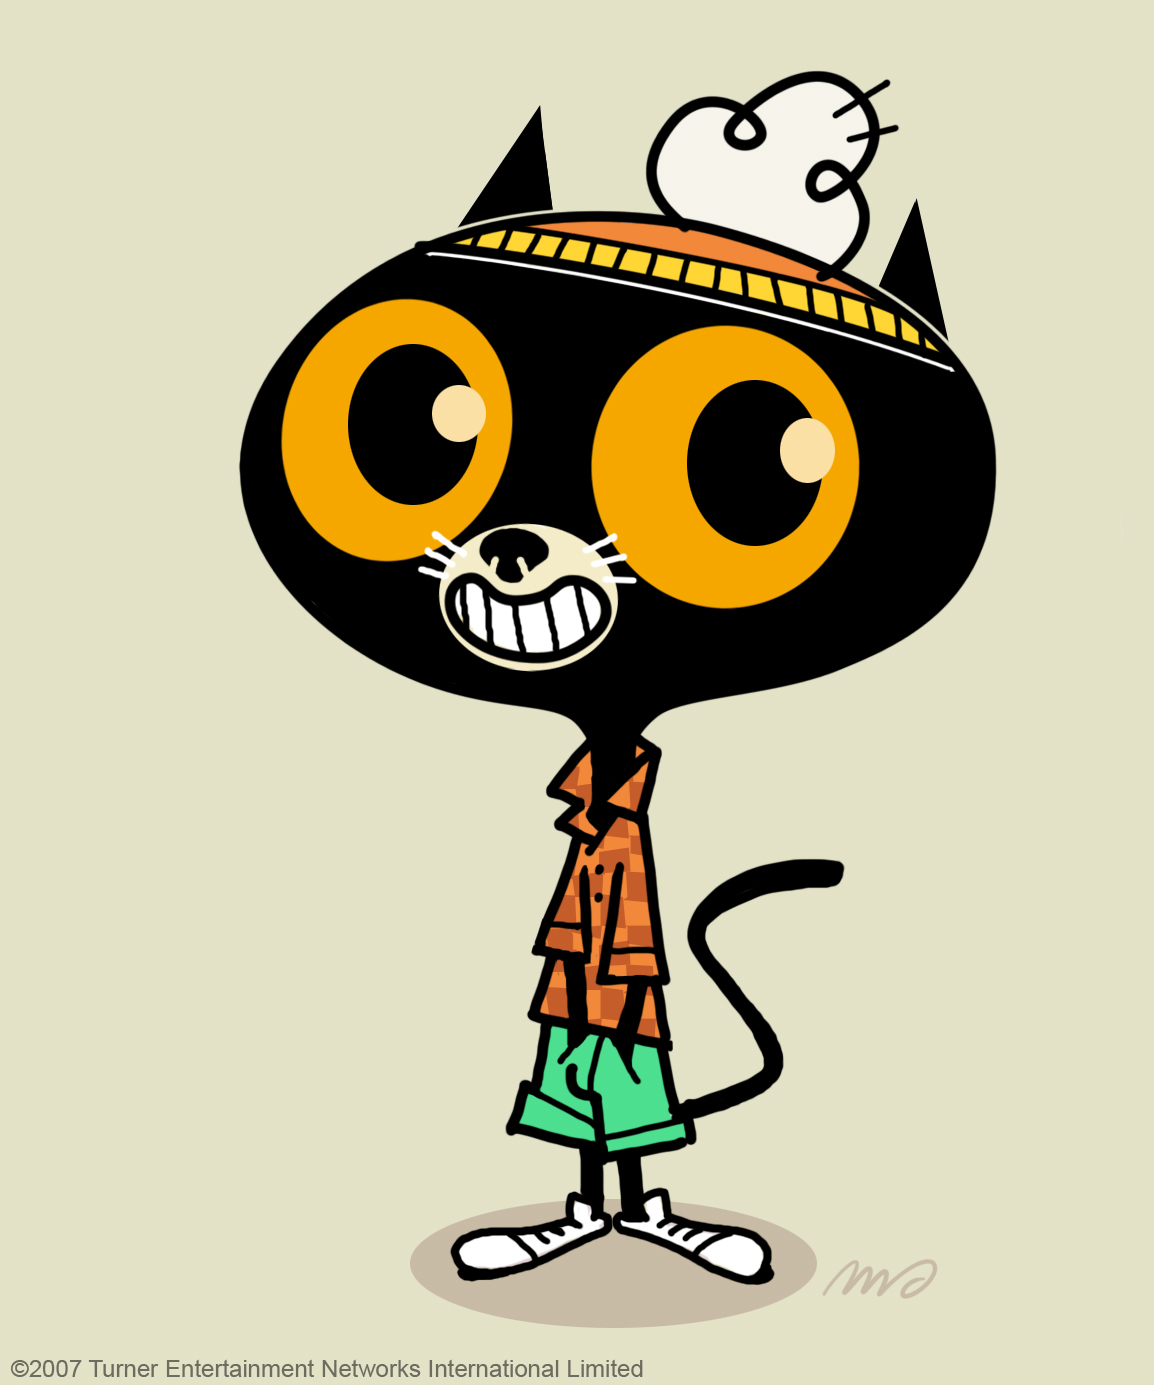 When Gumball almost became a black cat.